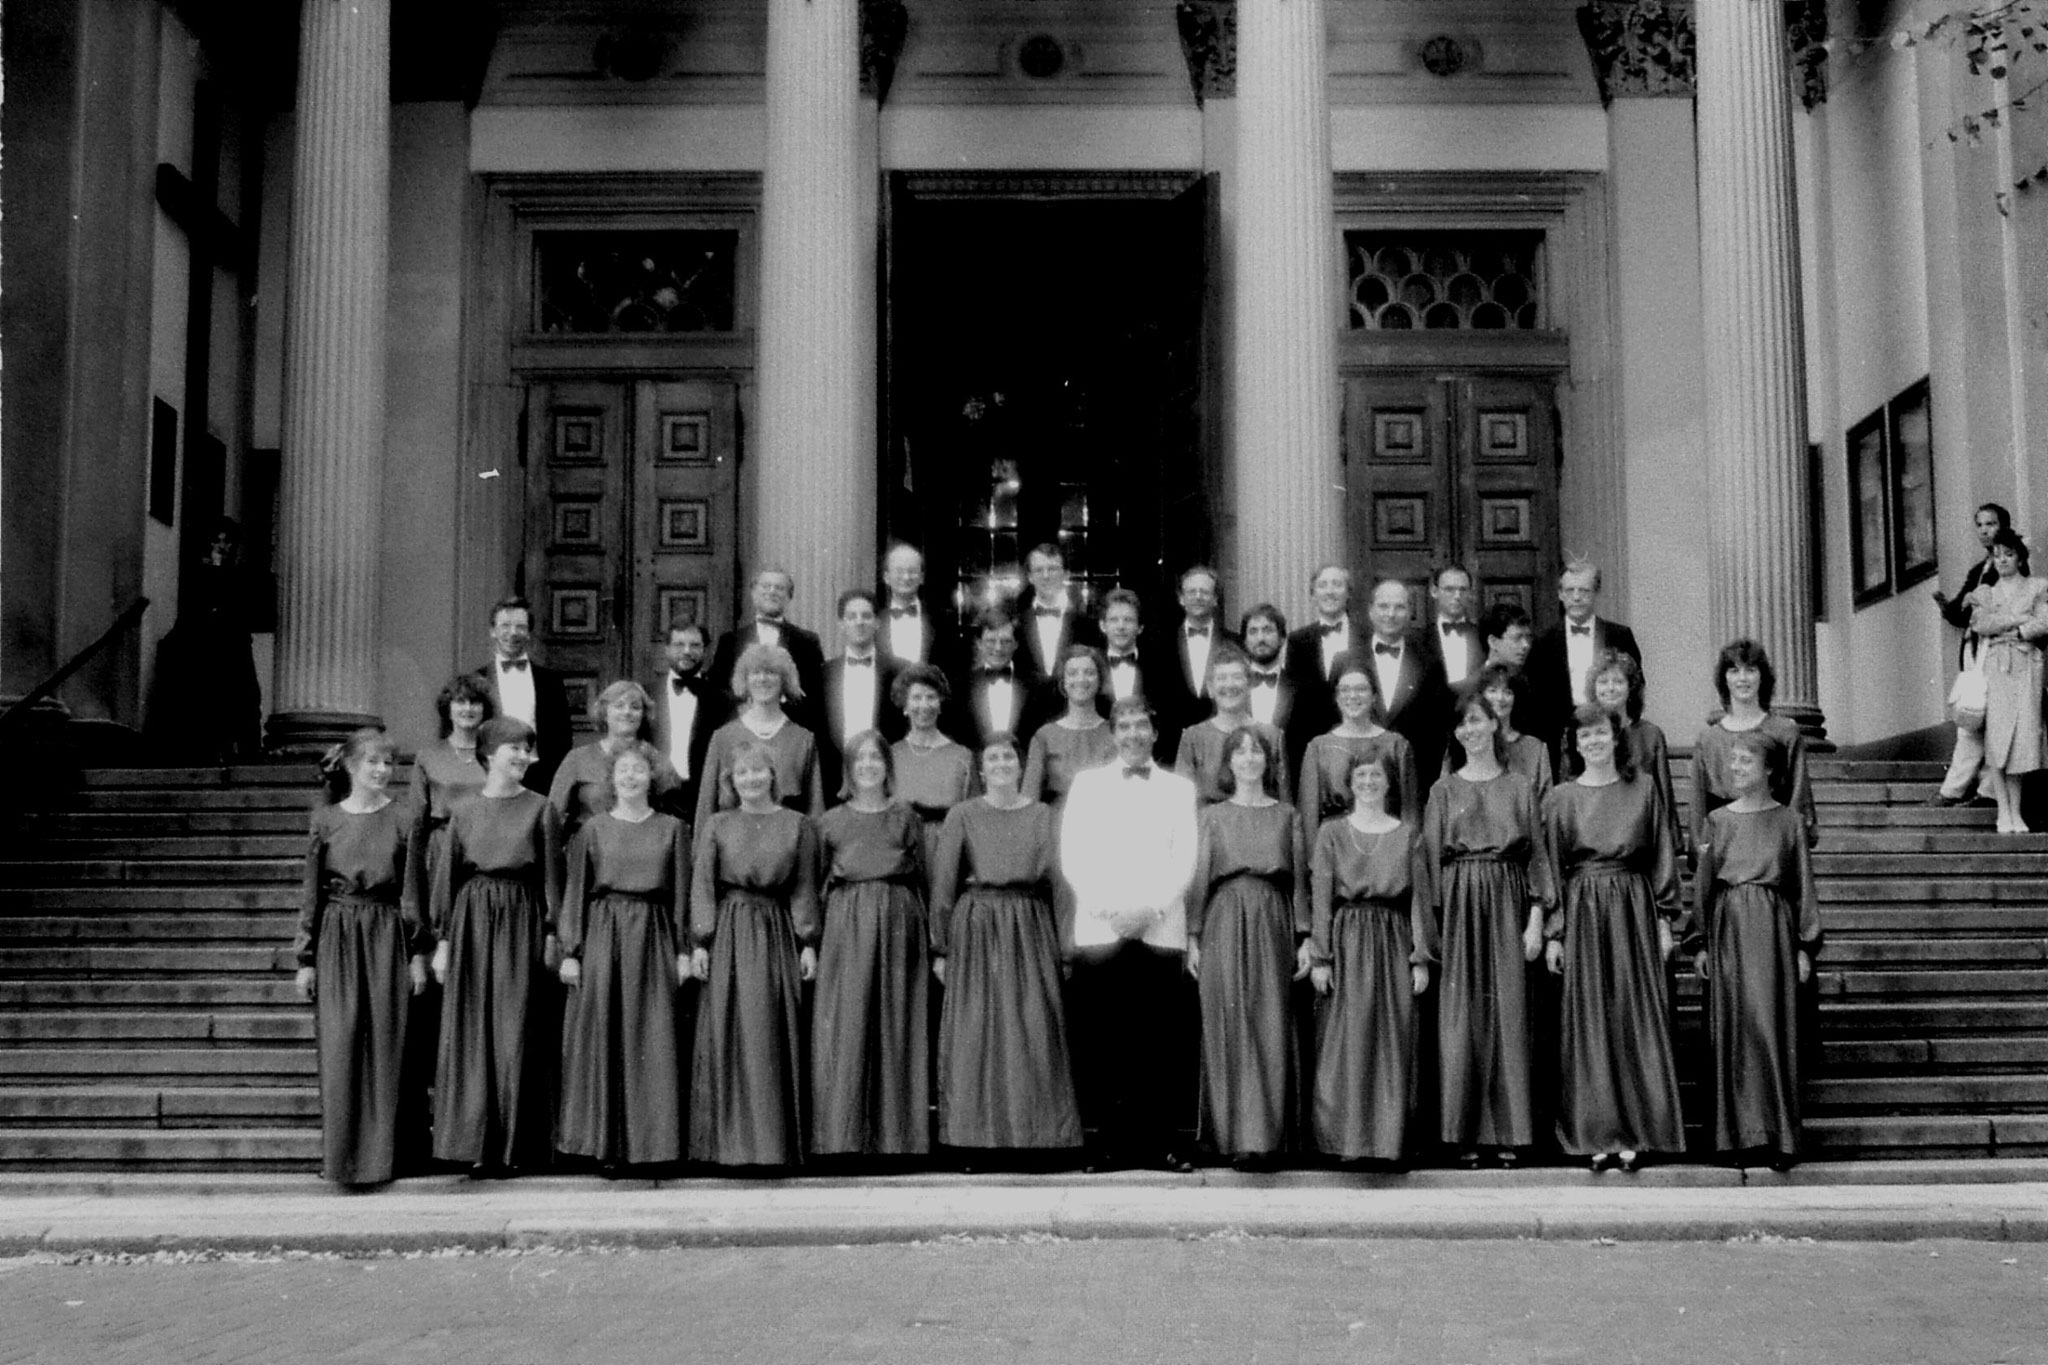 26/8/1988: 3: London Chorale at St Andrew's Warsaw